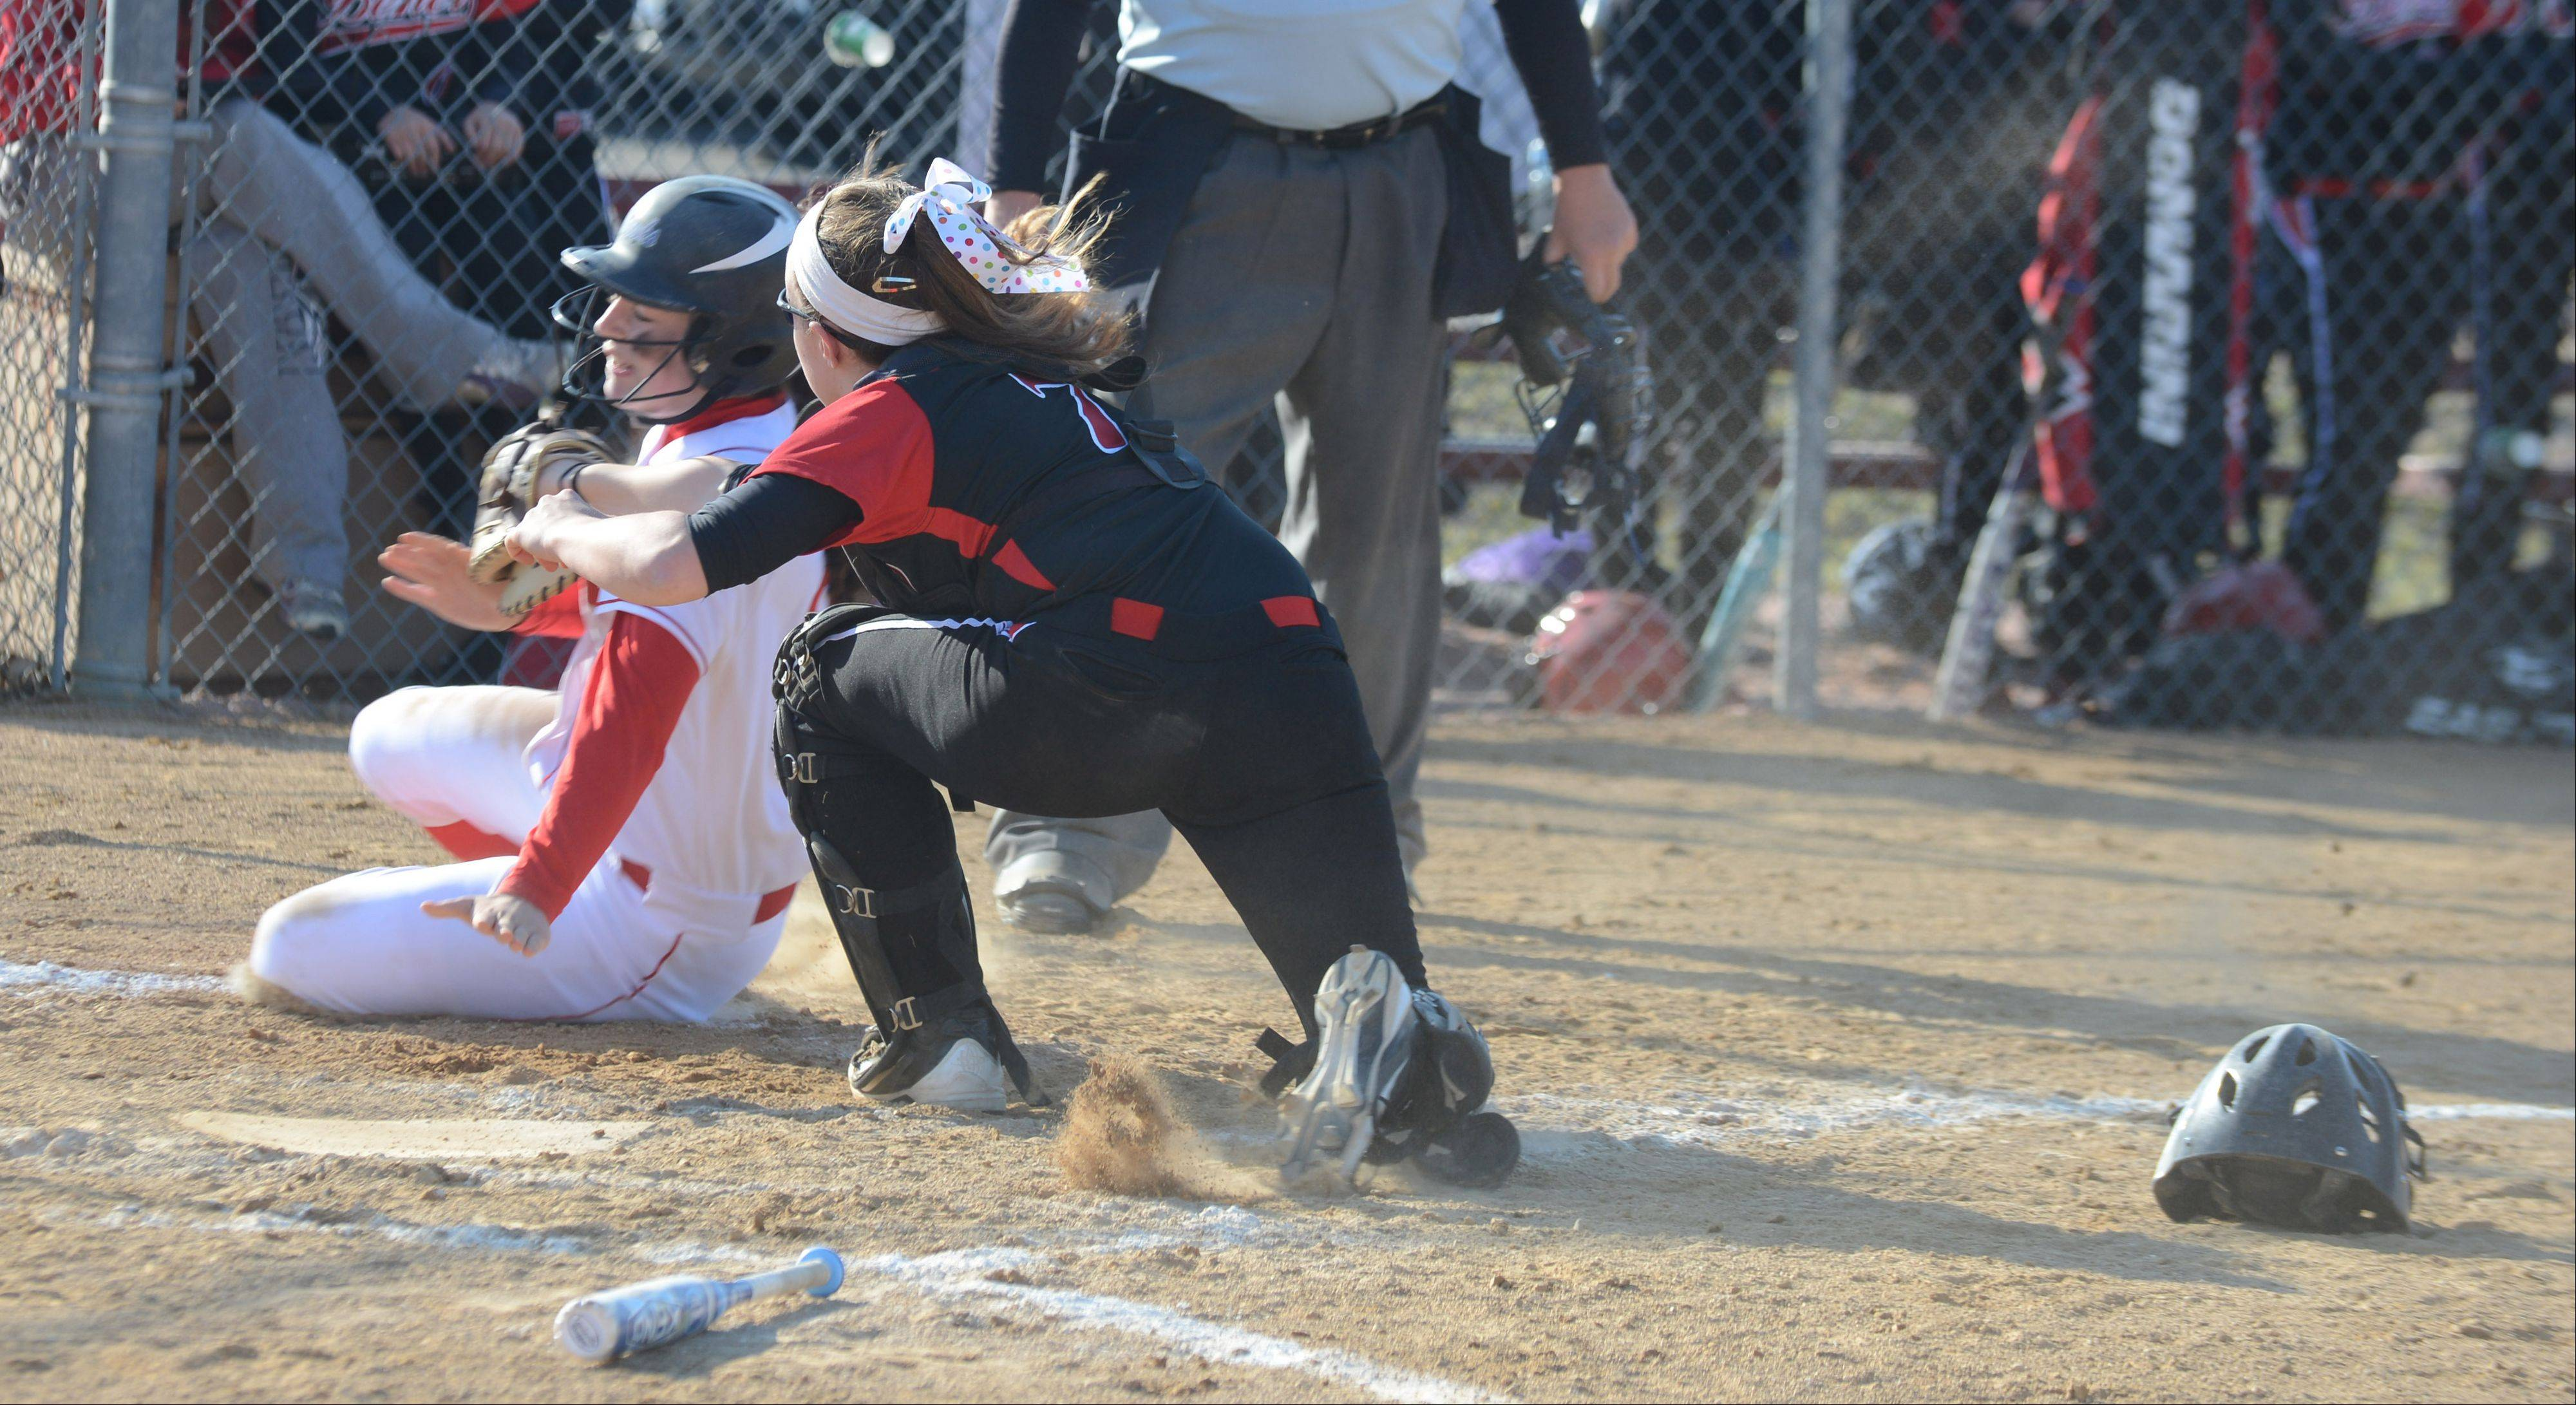 Lisa Tassi of Naperville Central gets tagged out at home by Erin Cohoon of Benet. This took place during the Naperville Central at Benet softball game Thursday.